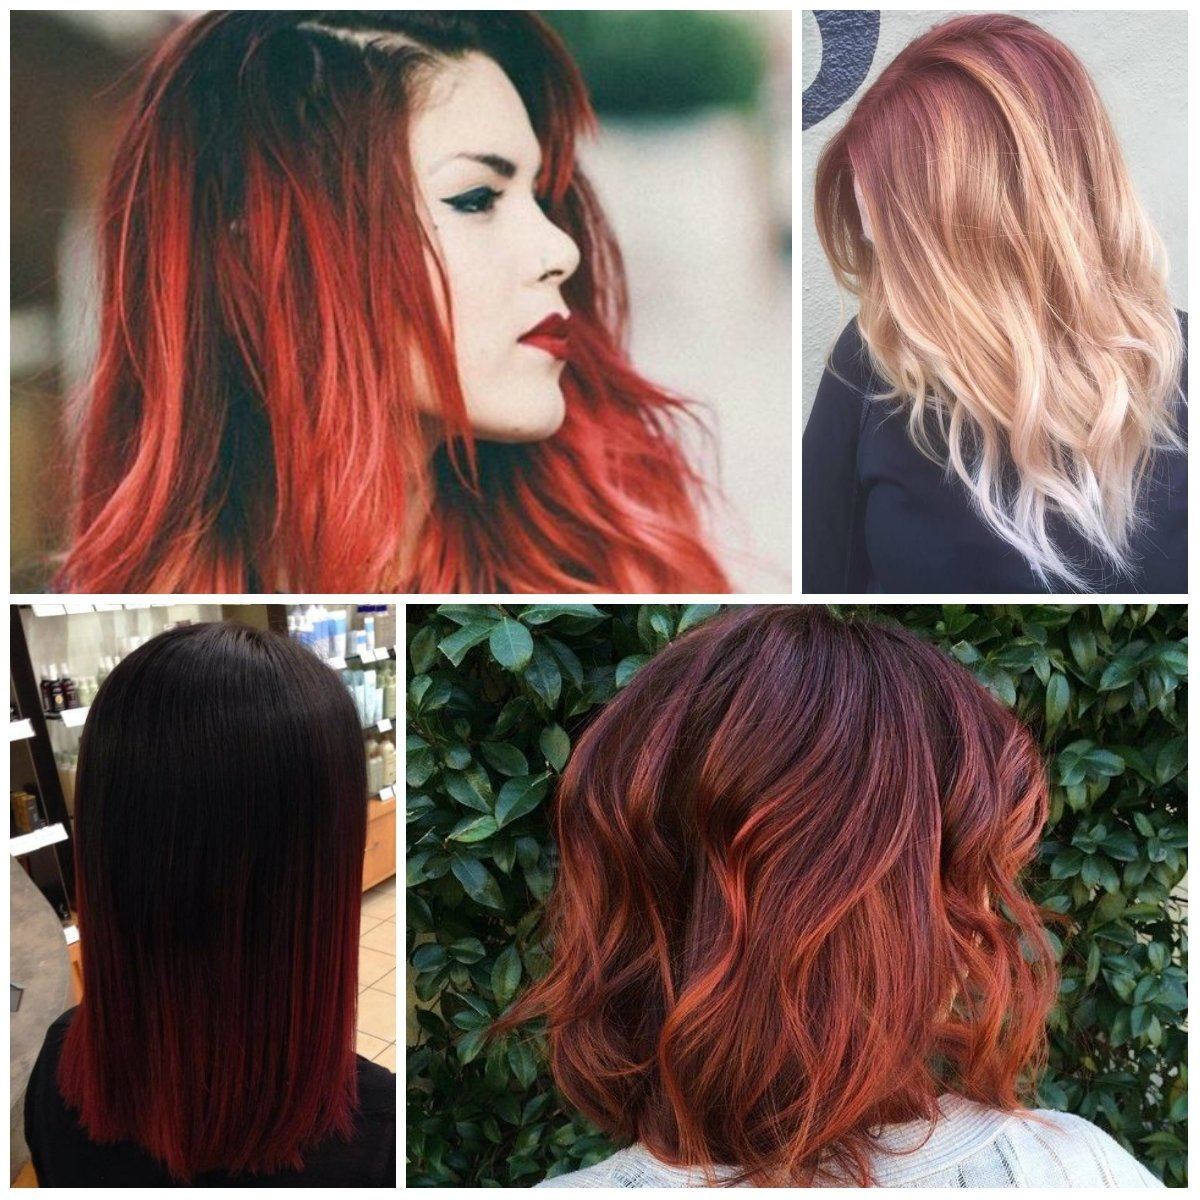 10 Lovable Brown And Red Hair Color Ideas red ombre hair colors for 2017 best hair color ideas trends in 2020